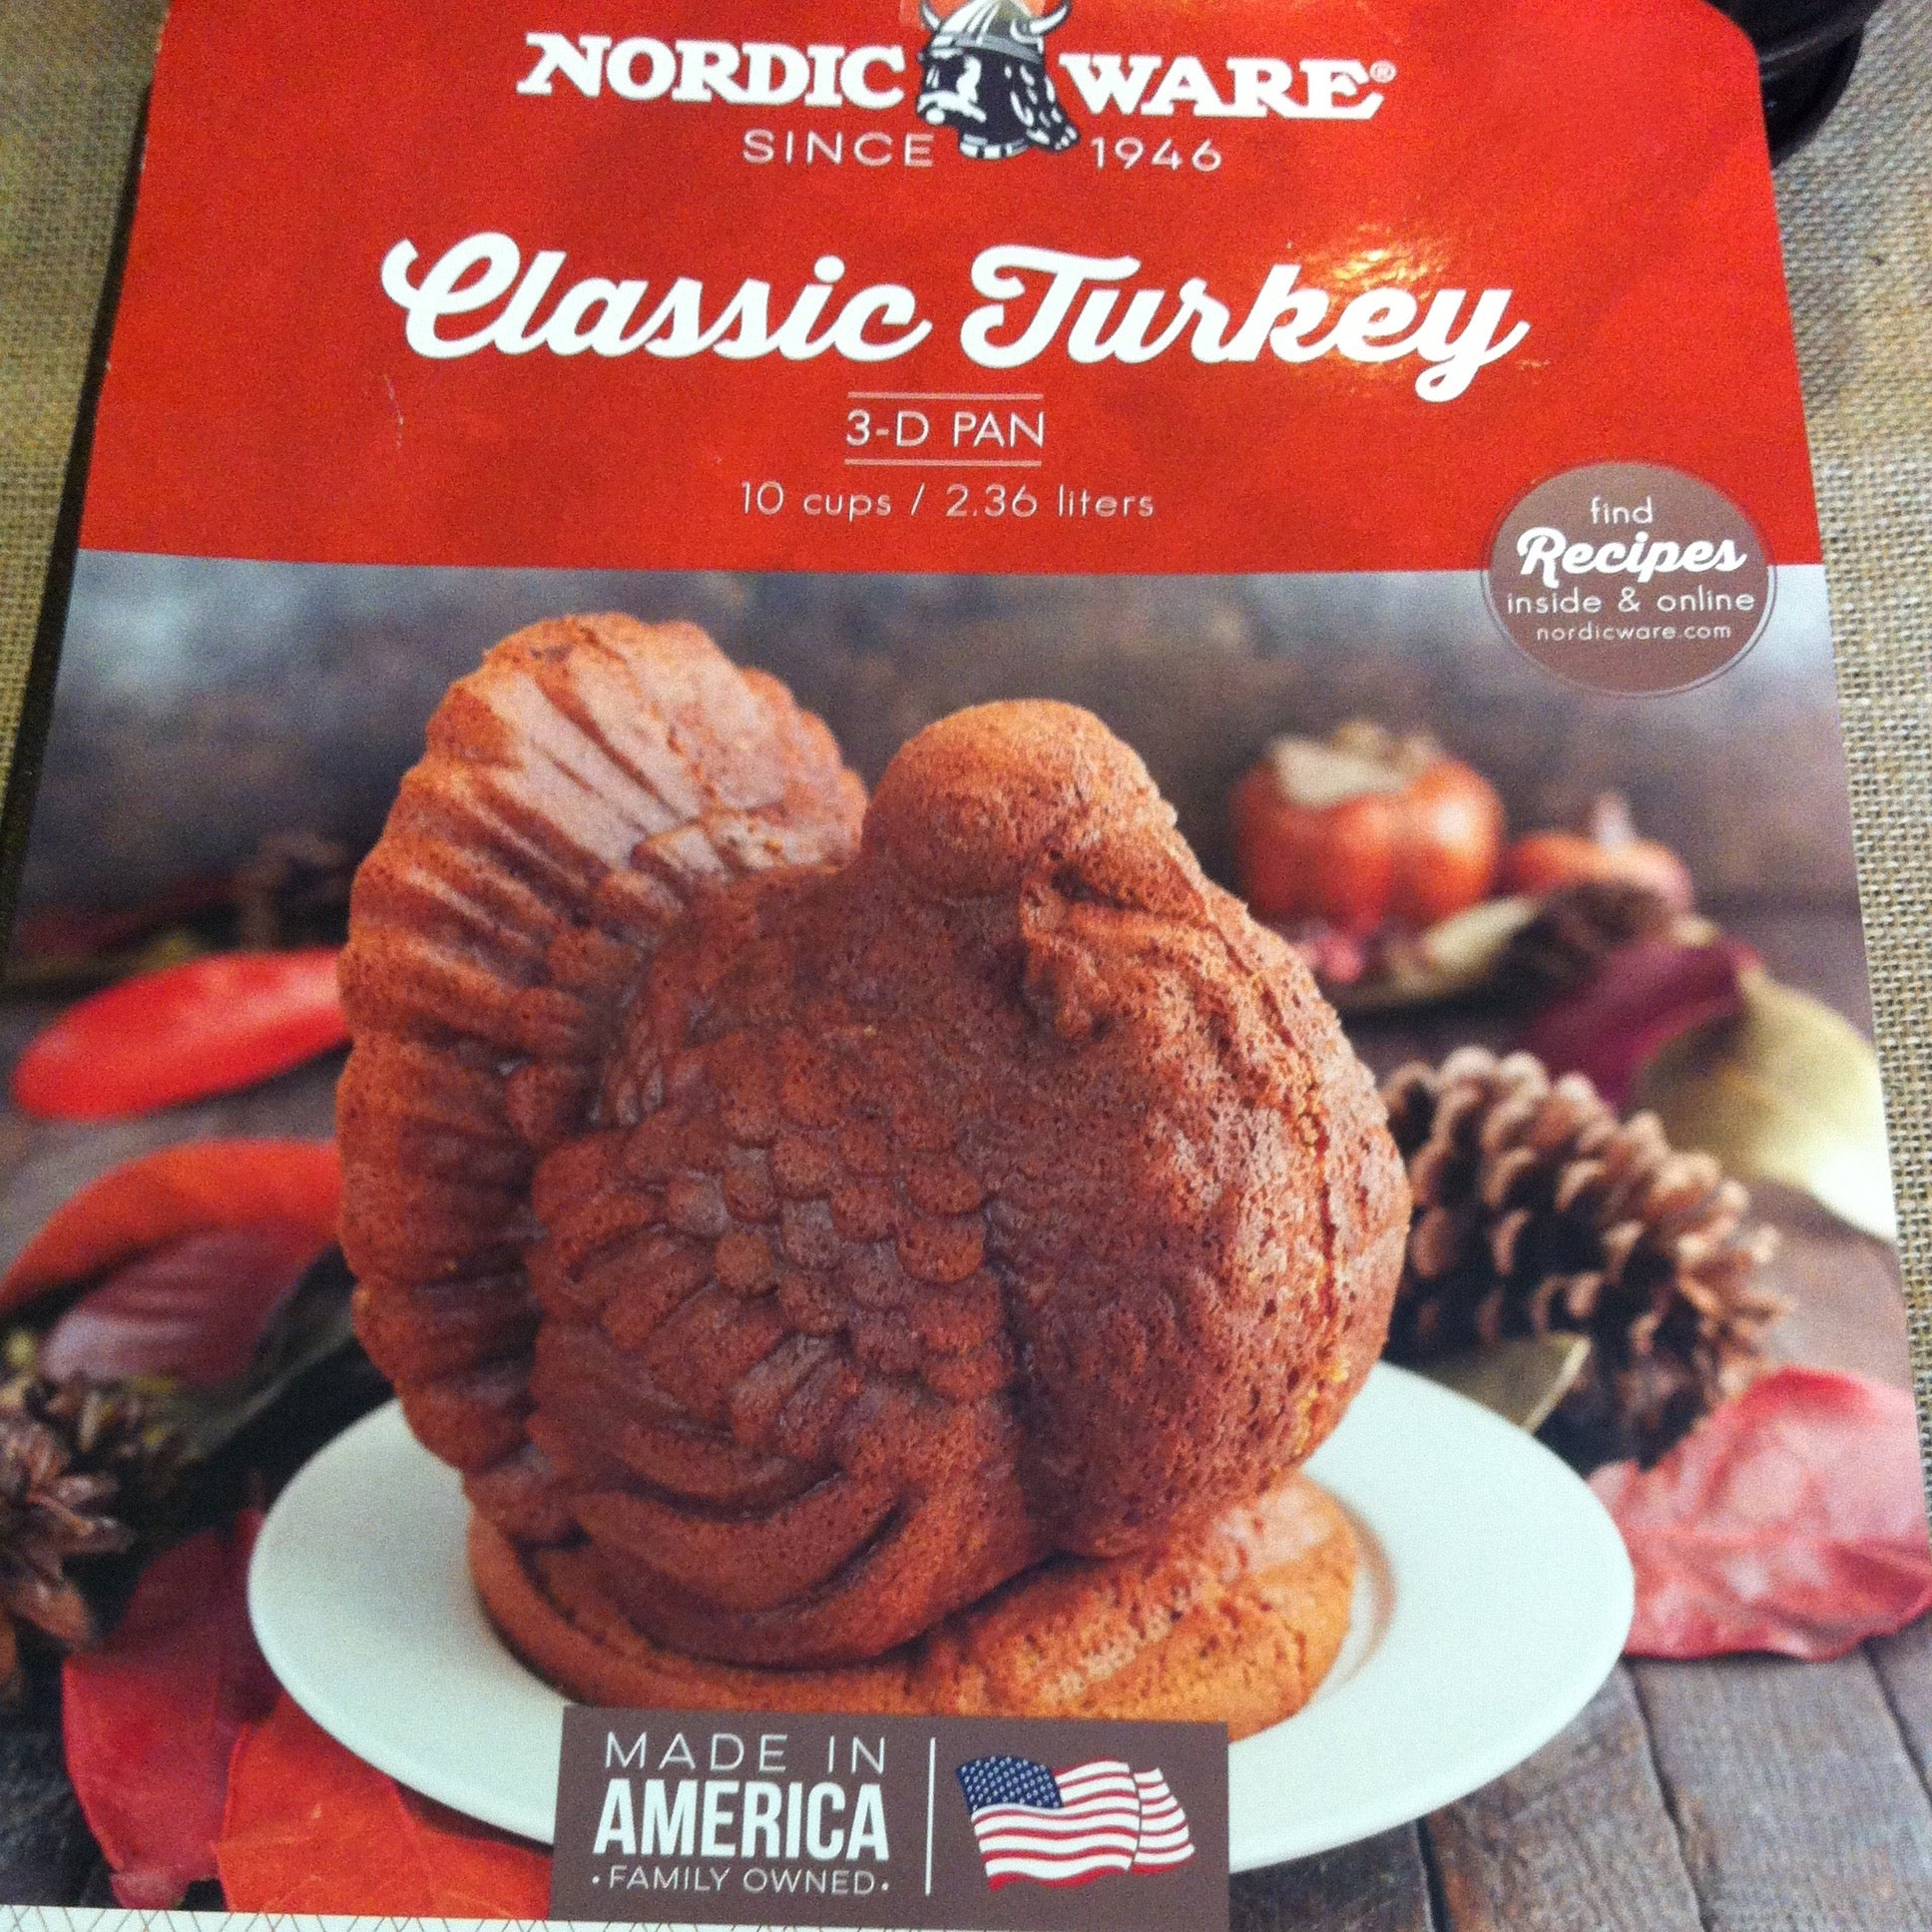 Classic Turkey 3-D Bundt Pan